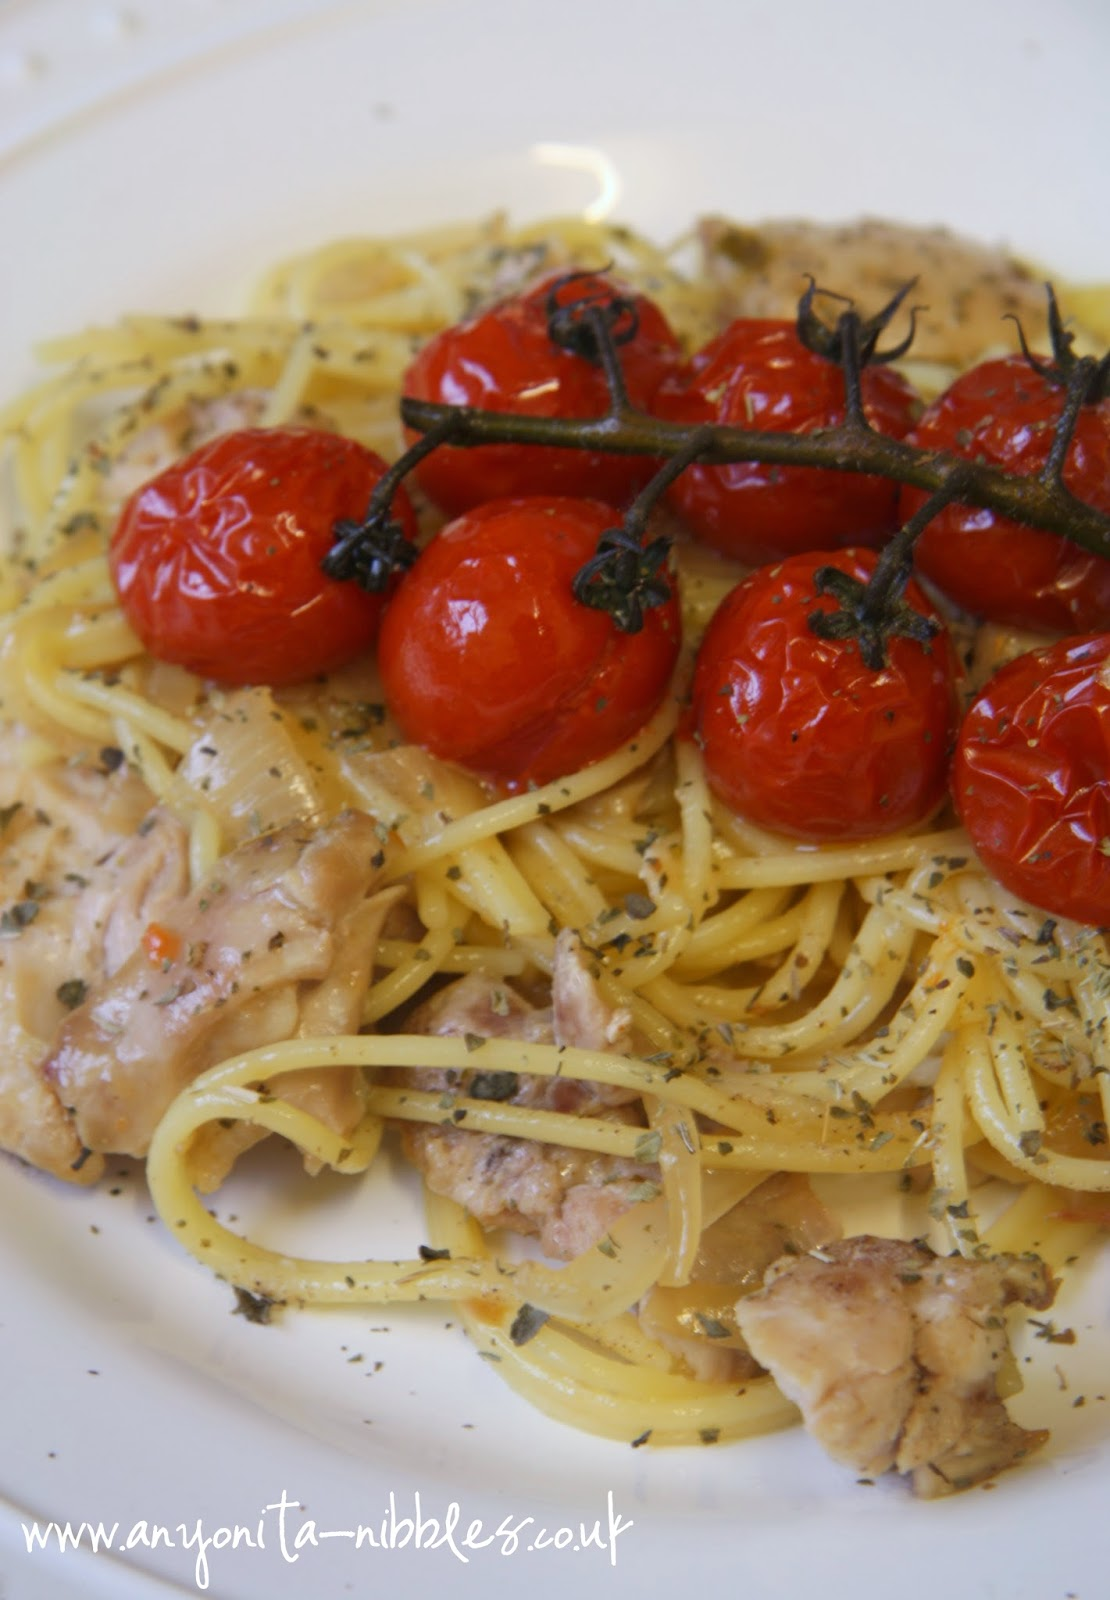 A sophisticated end of summer twist on spaghetti with Lindeman's wine from www.anyonita-nibbles.co.uk